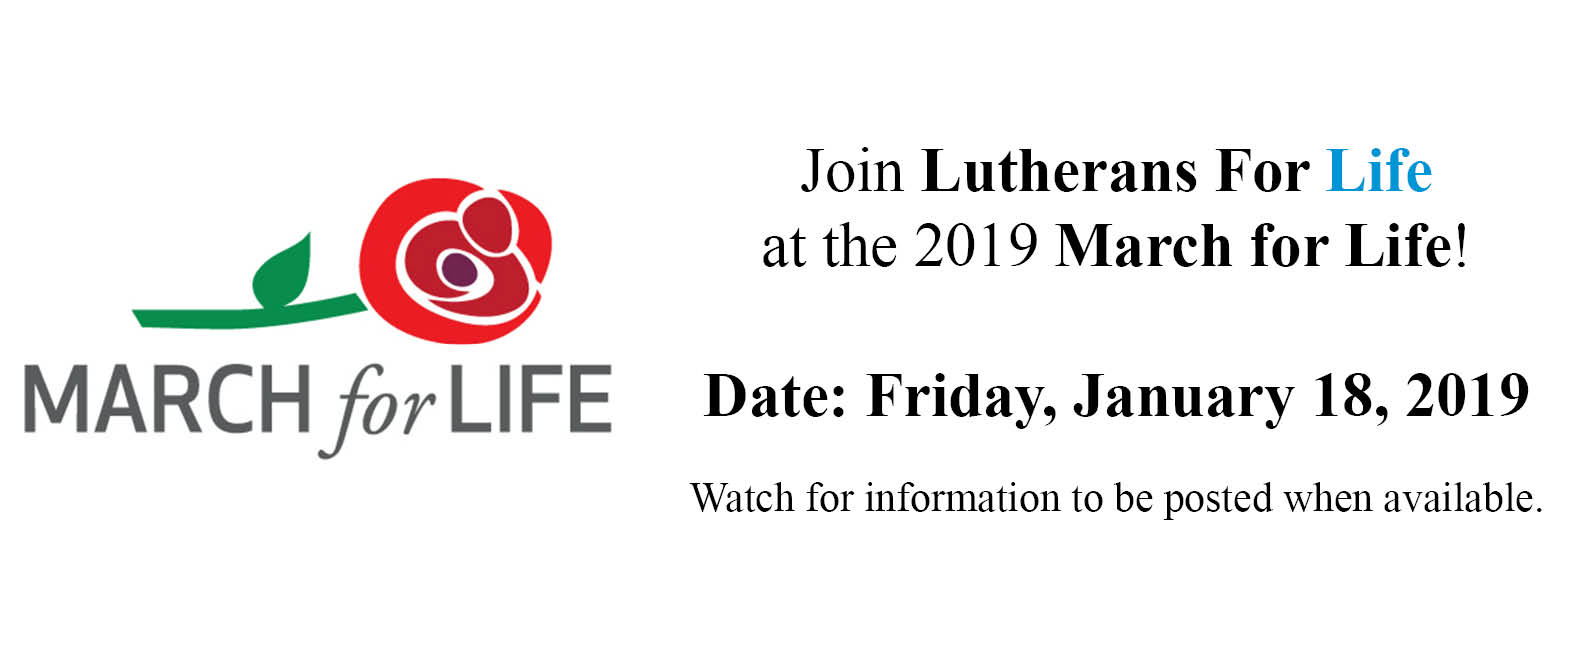 Lcms Church Year Calendar 2019 With Lutherans For Life March